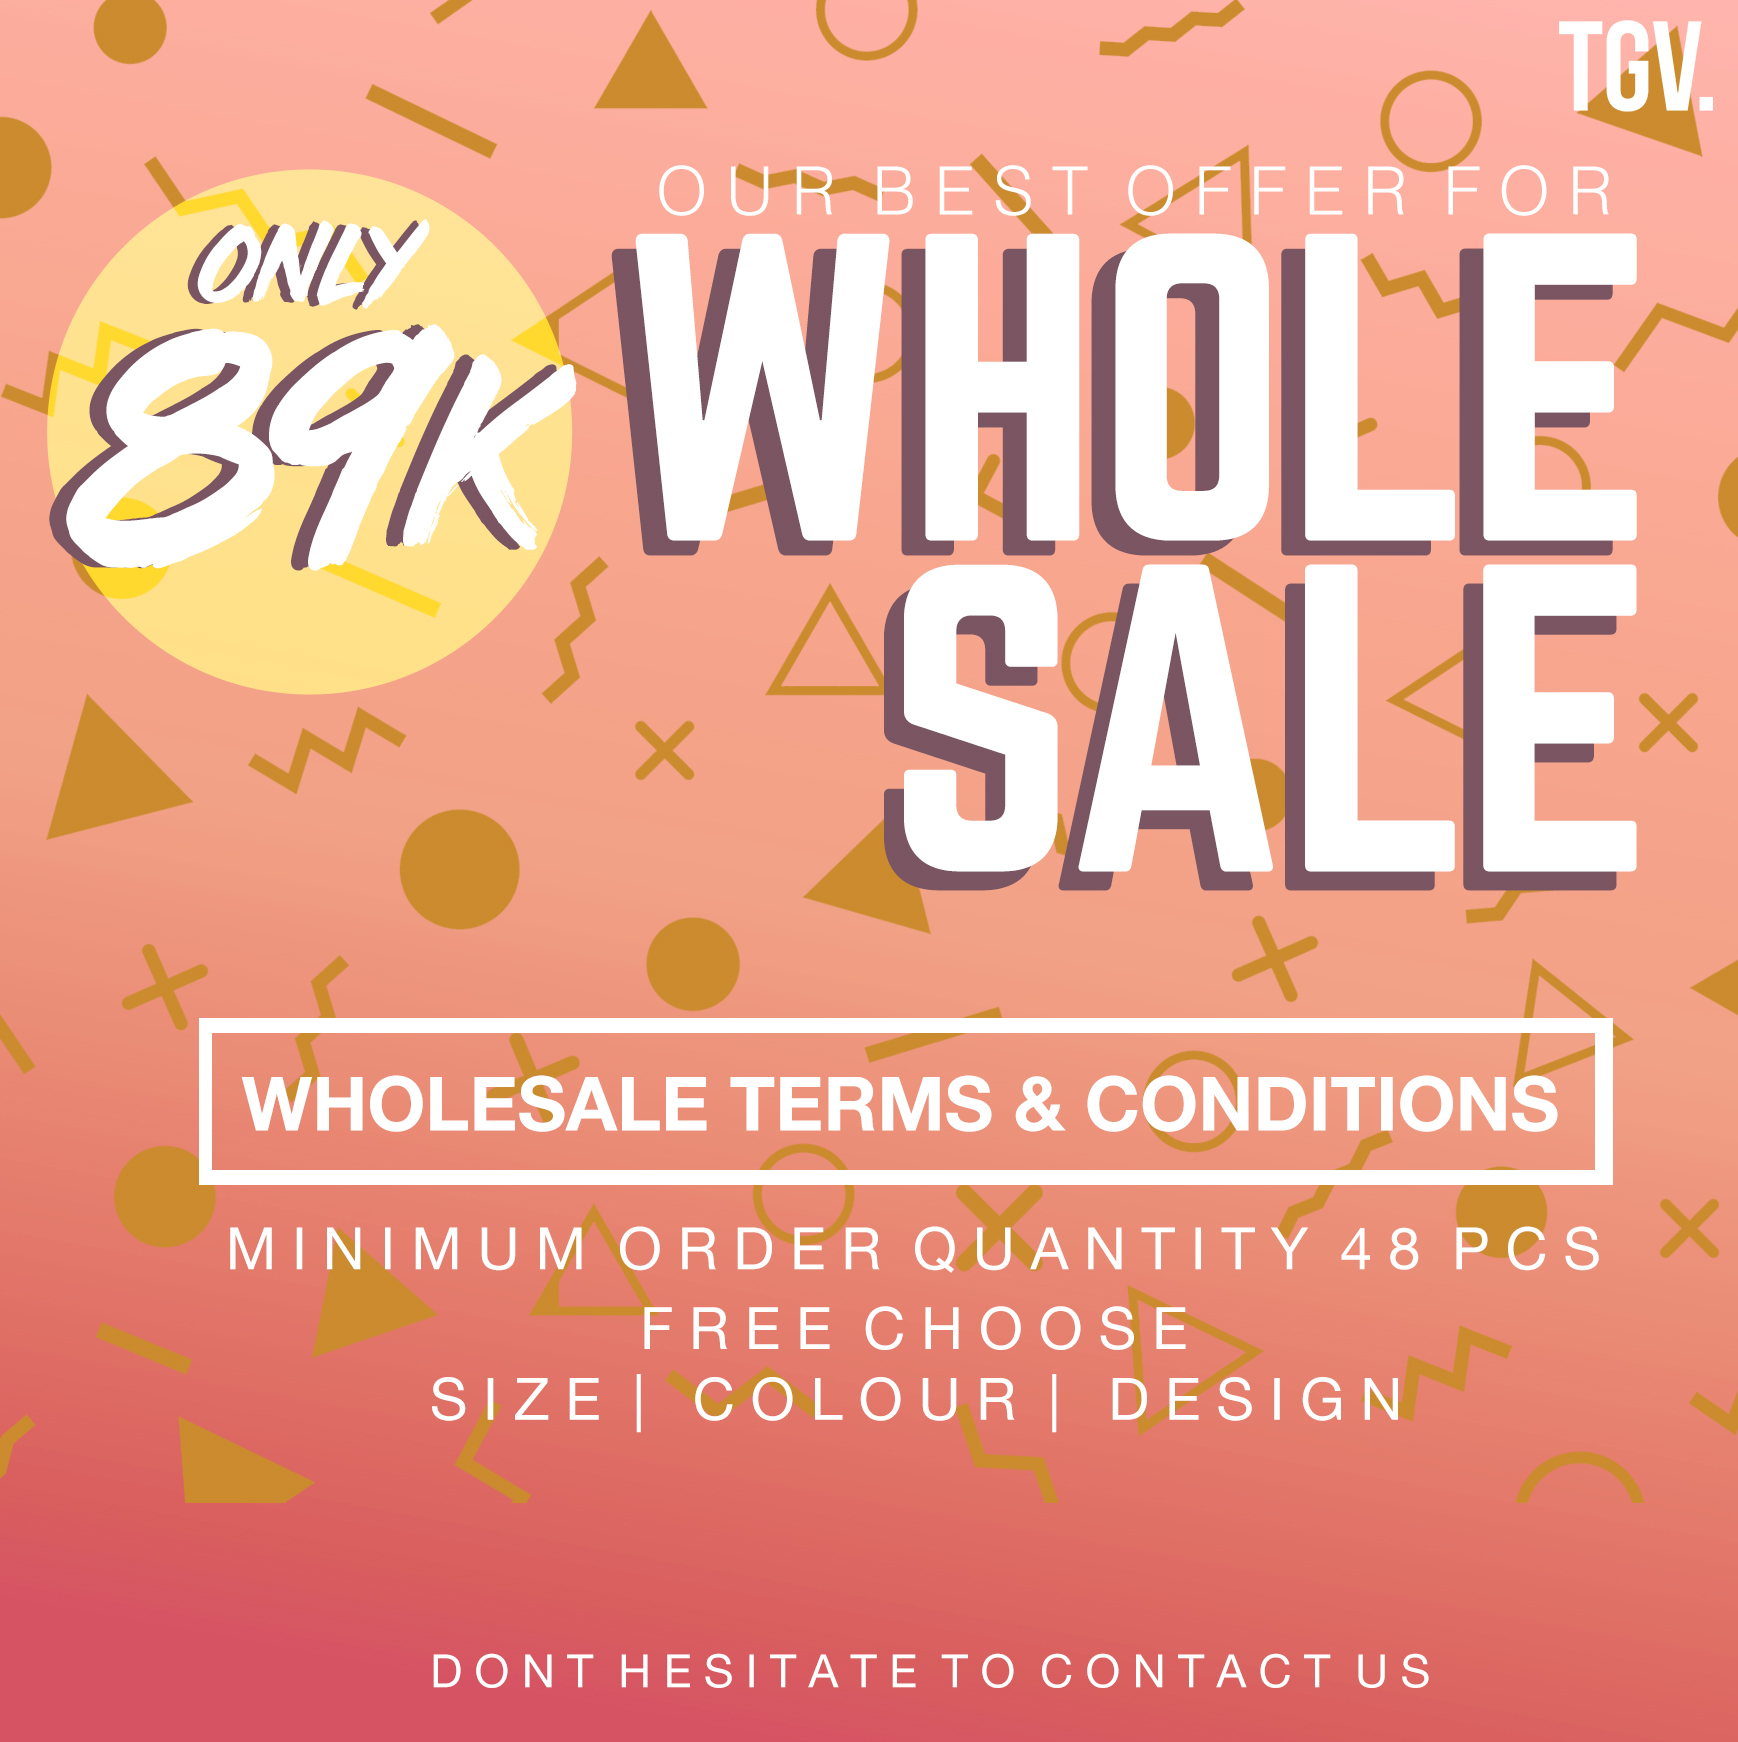 TGV WHOLESALE PACKAGE ULTIMATE